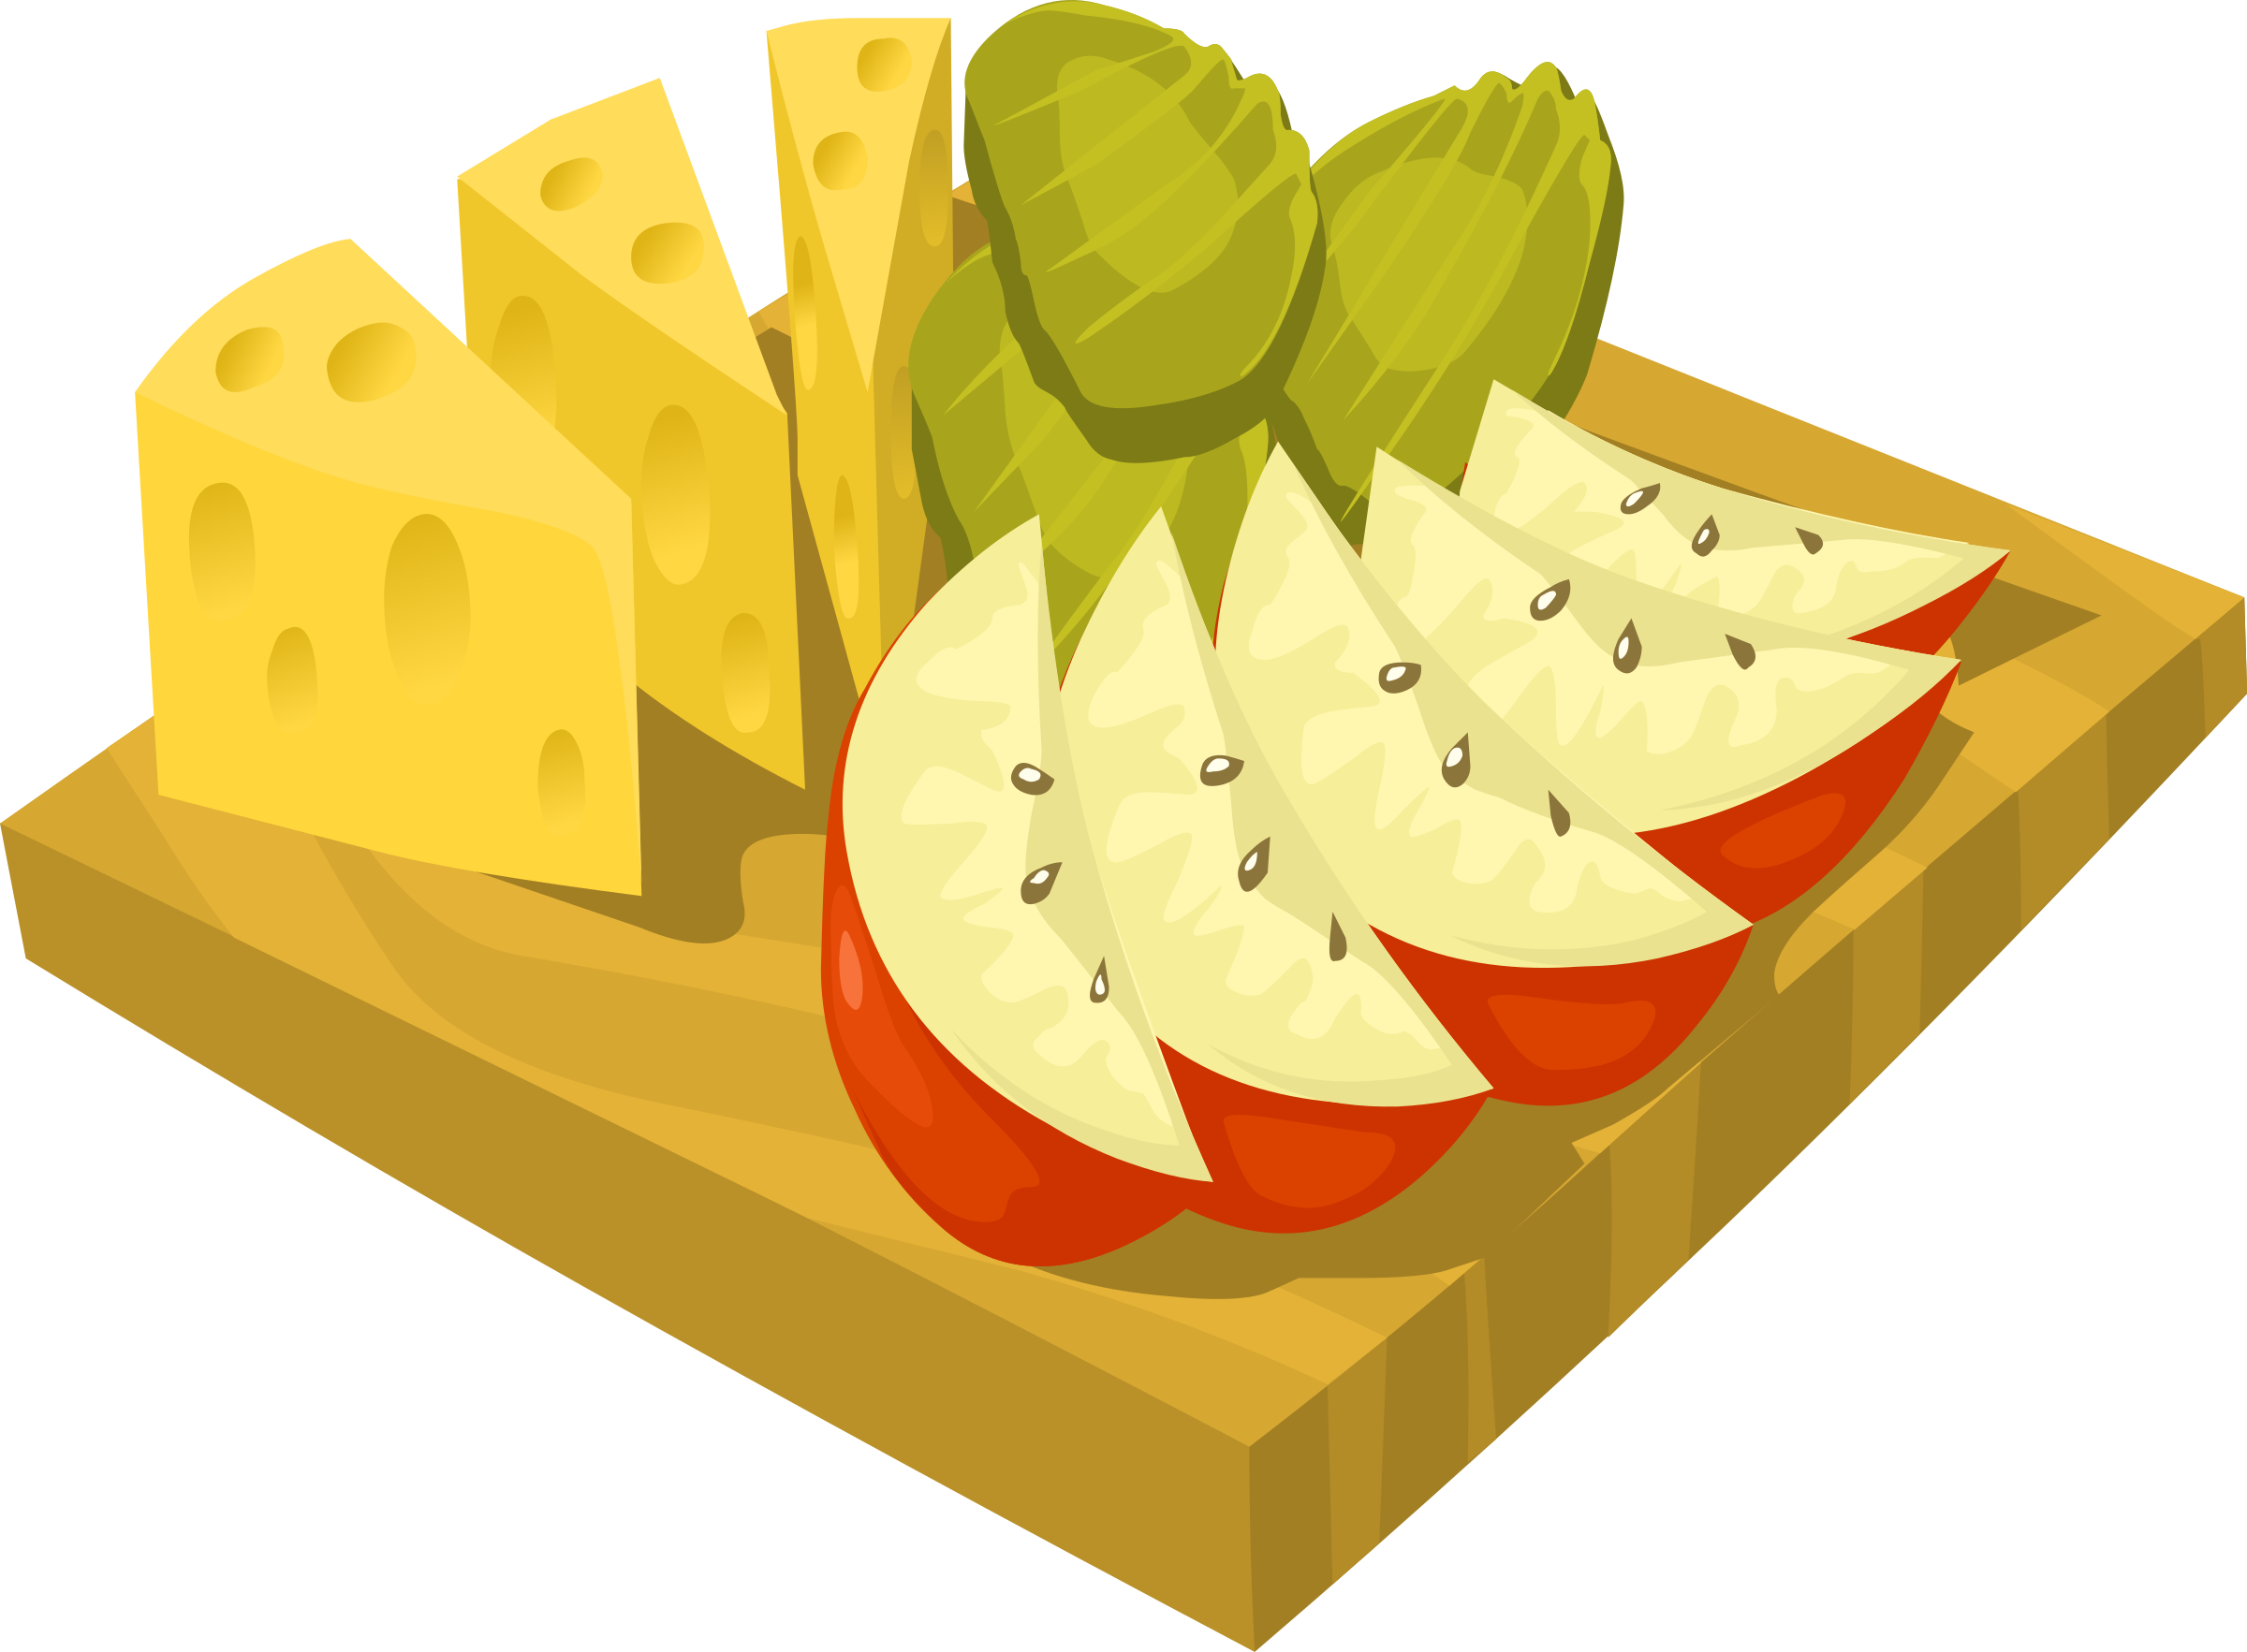 Healthy snack clipart 6.